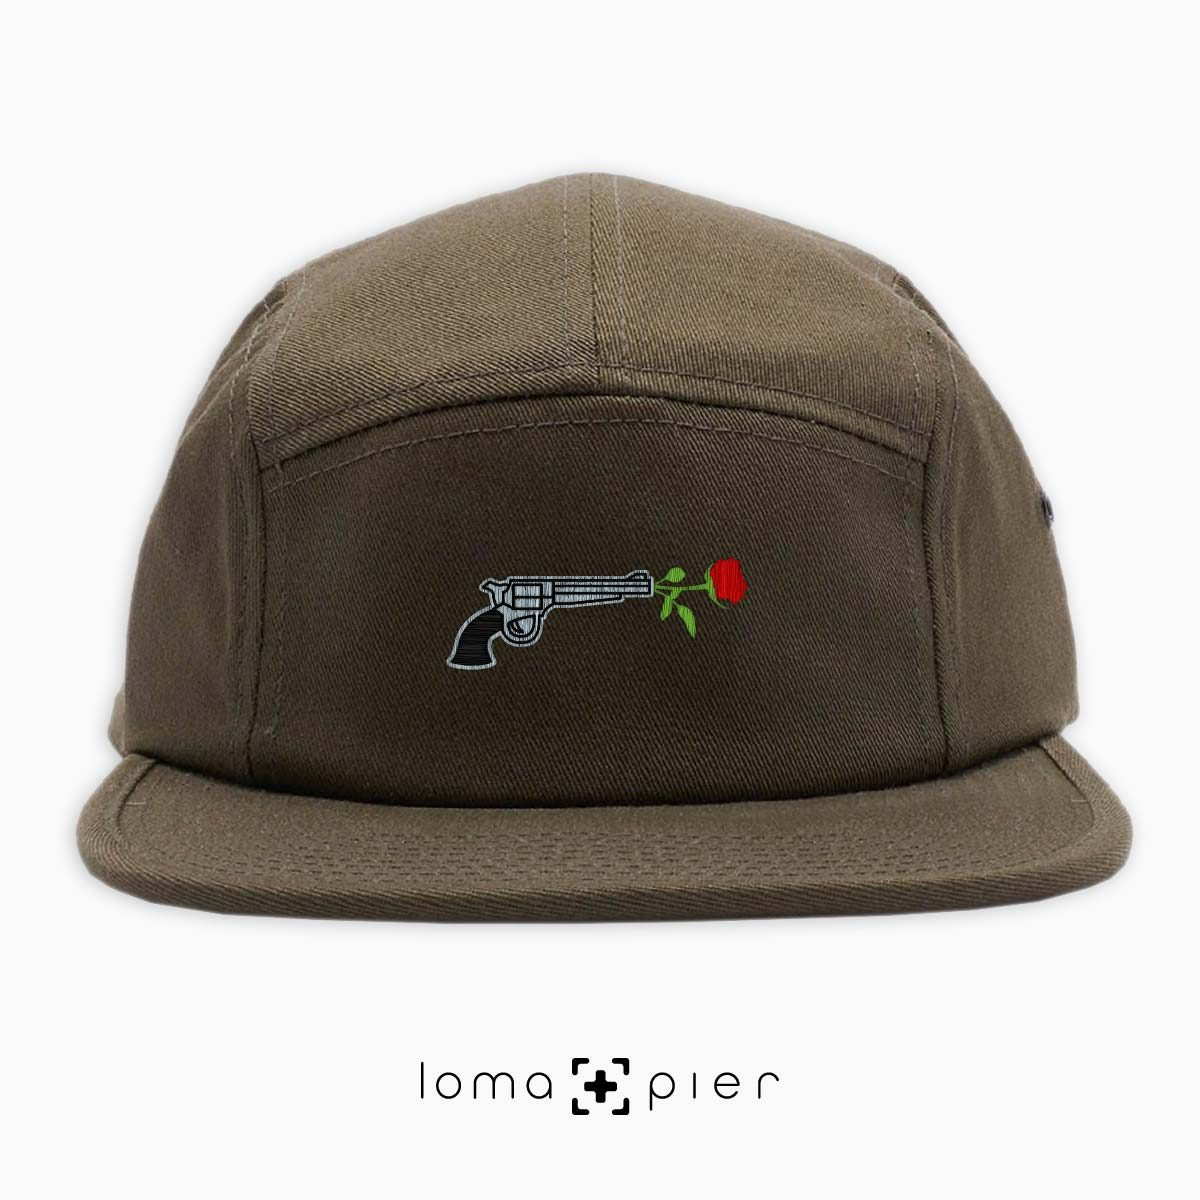 ROSE REVOLVER icon embroidered on an olive green cotton 5-panel hat with multicolor thread by loma+pier hat store